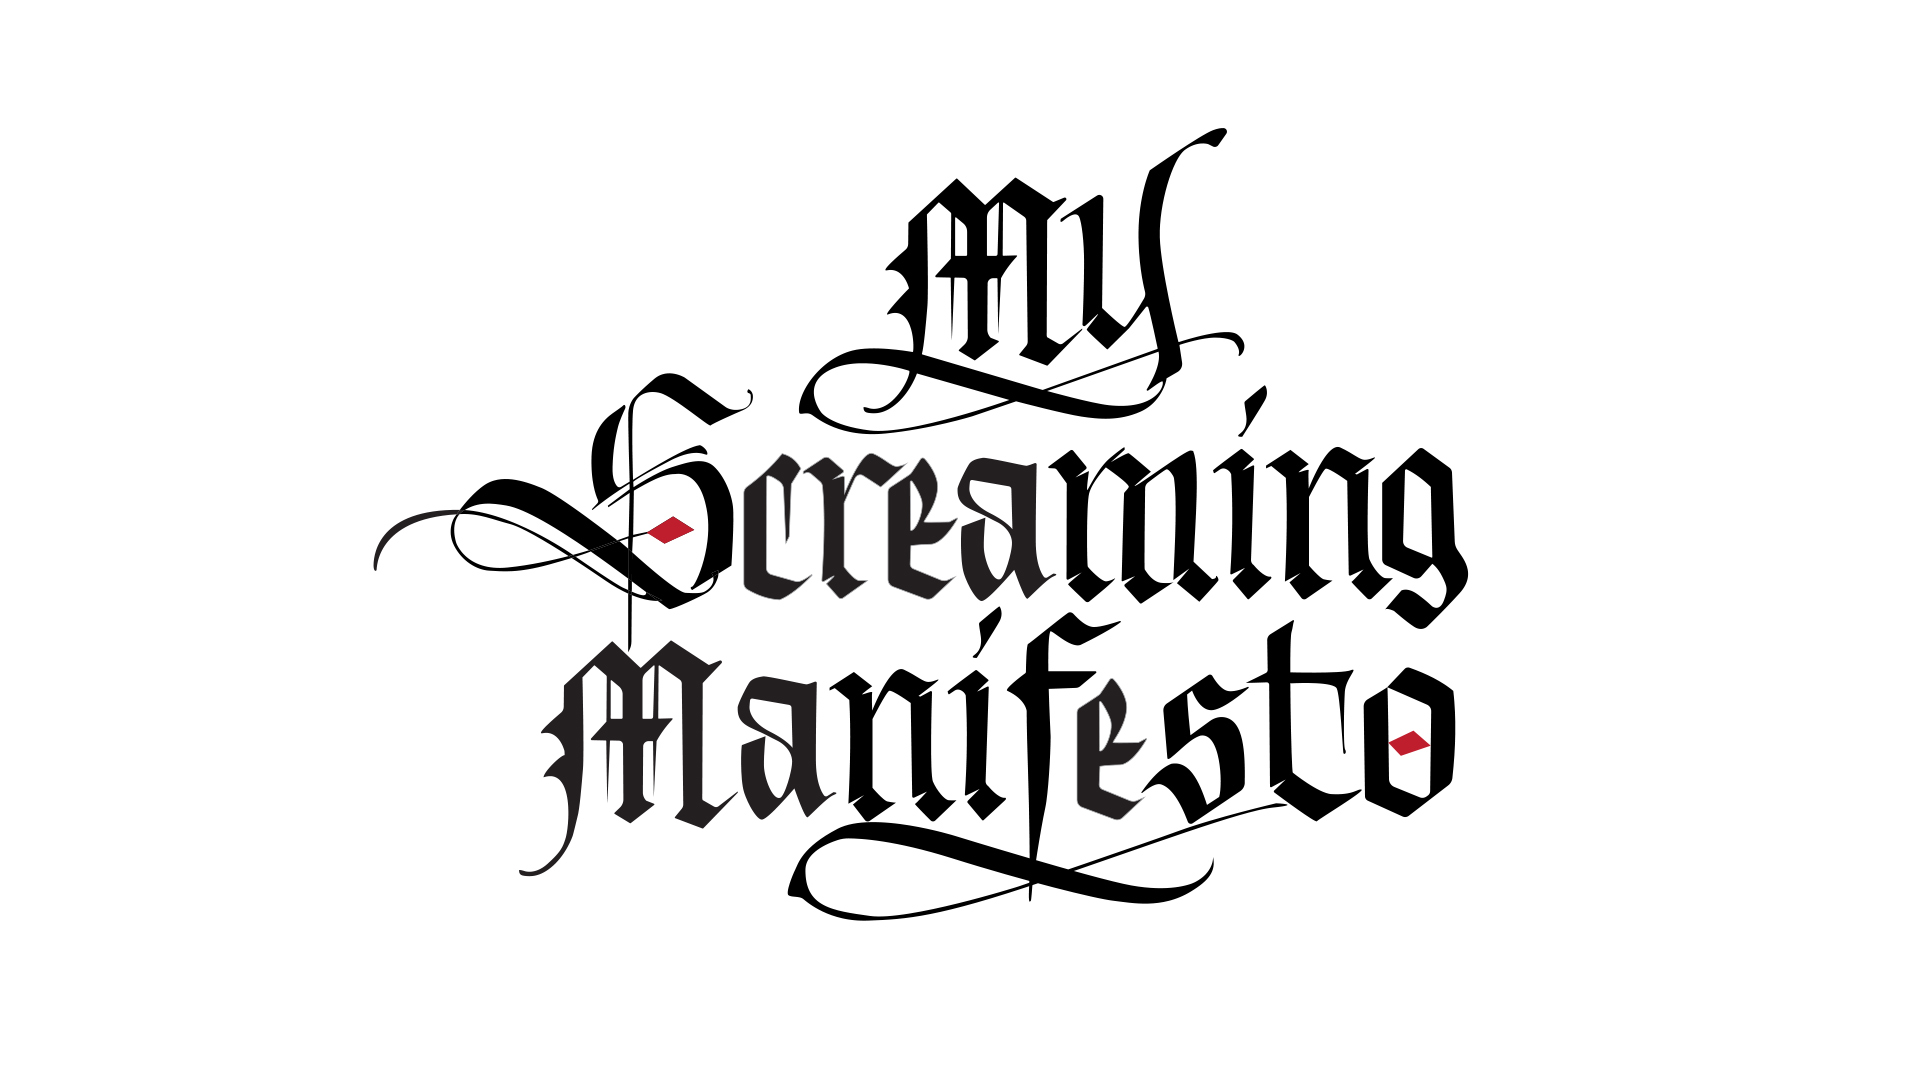 My-Screming-manifesto-logo-emanuele-serra